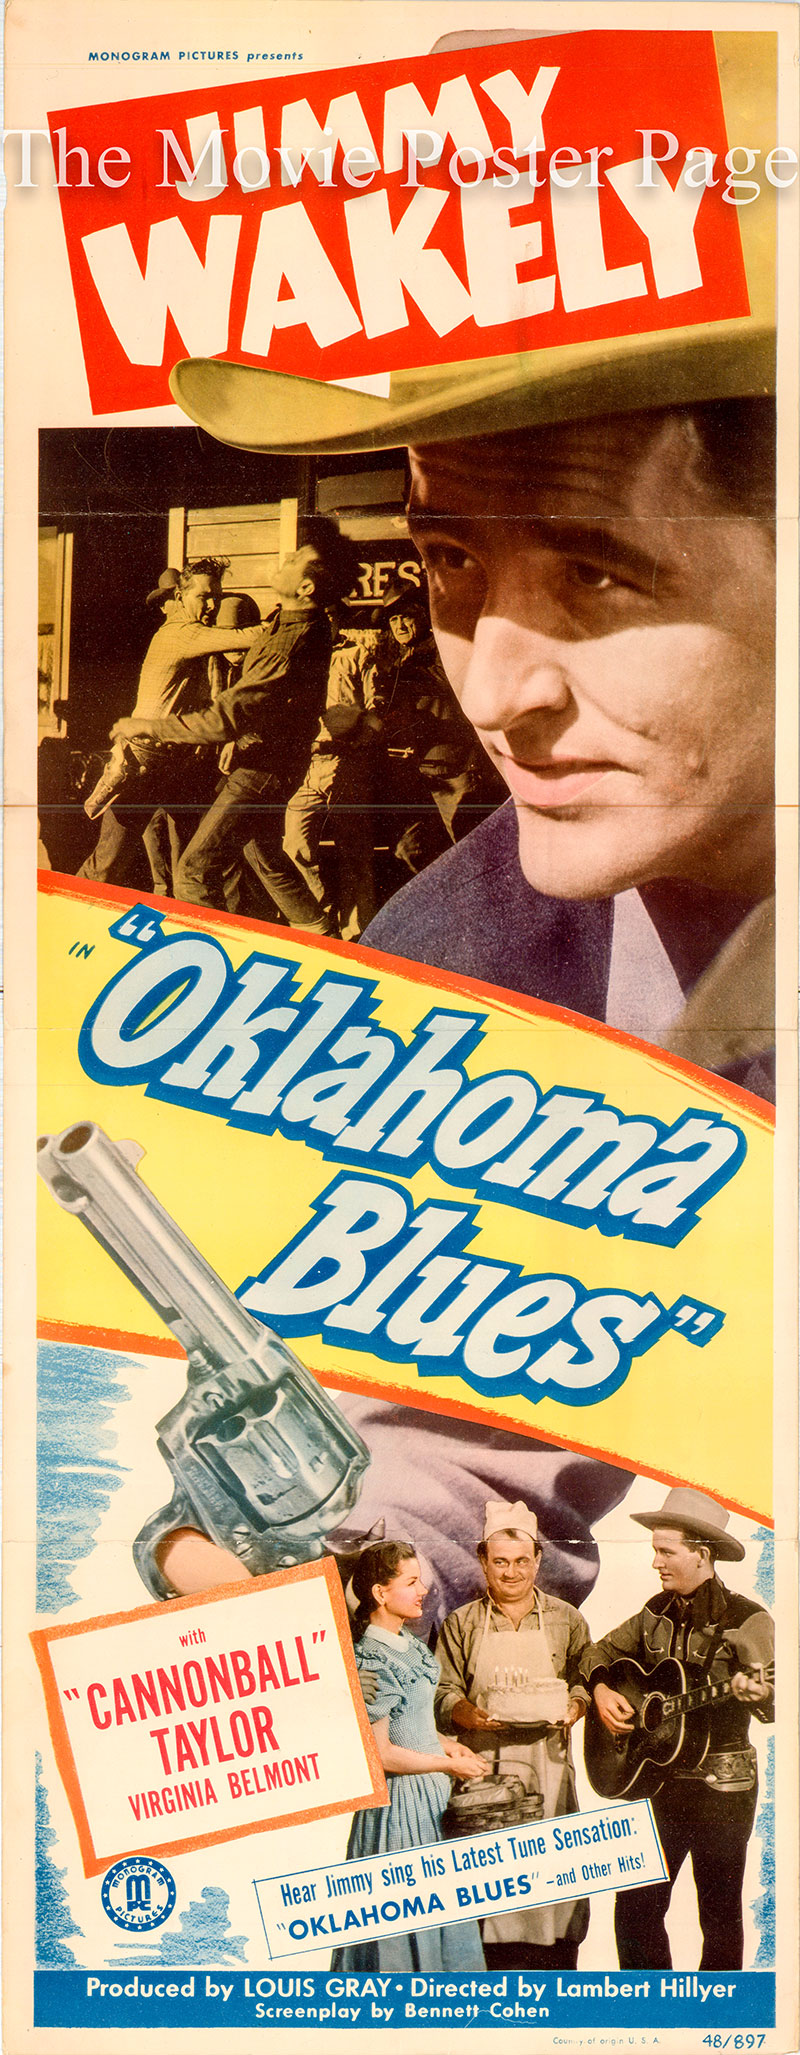 This is an image of the US insert promotional poster for the 1948 Lambert Hilyer film Oklahoma Blues, starring Jimmy Wakely